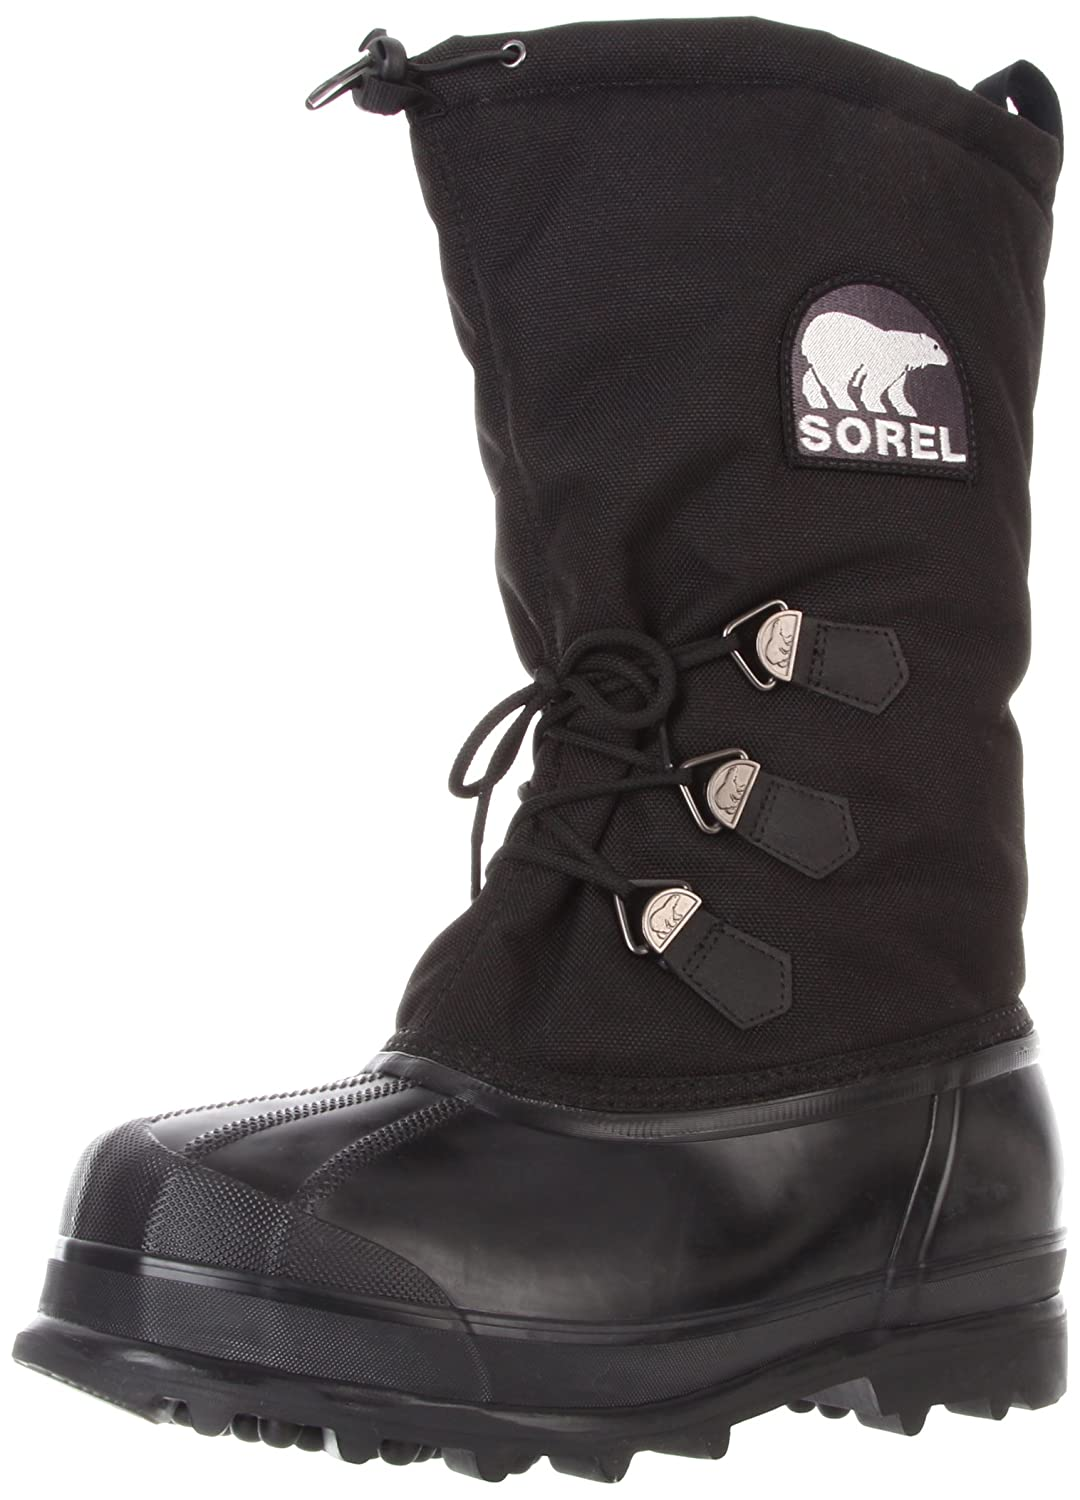 Sorel Men&#8217;s Glacier NM1042 Boot,Black,9 M